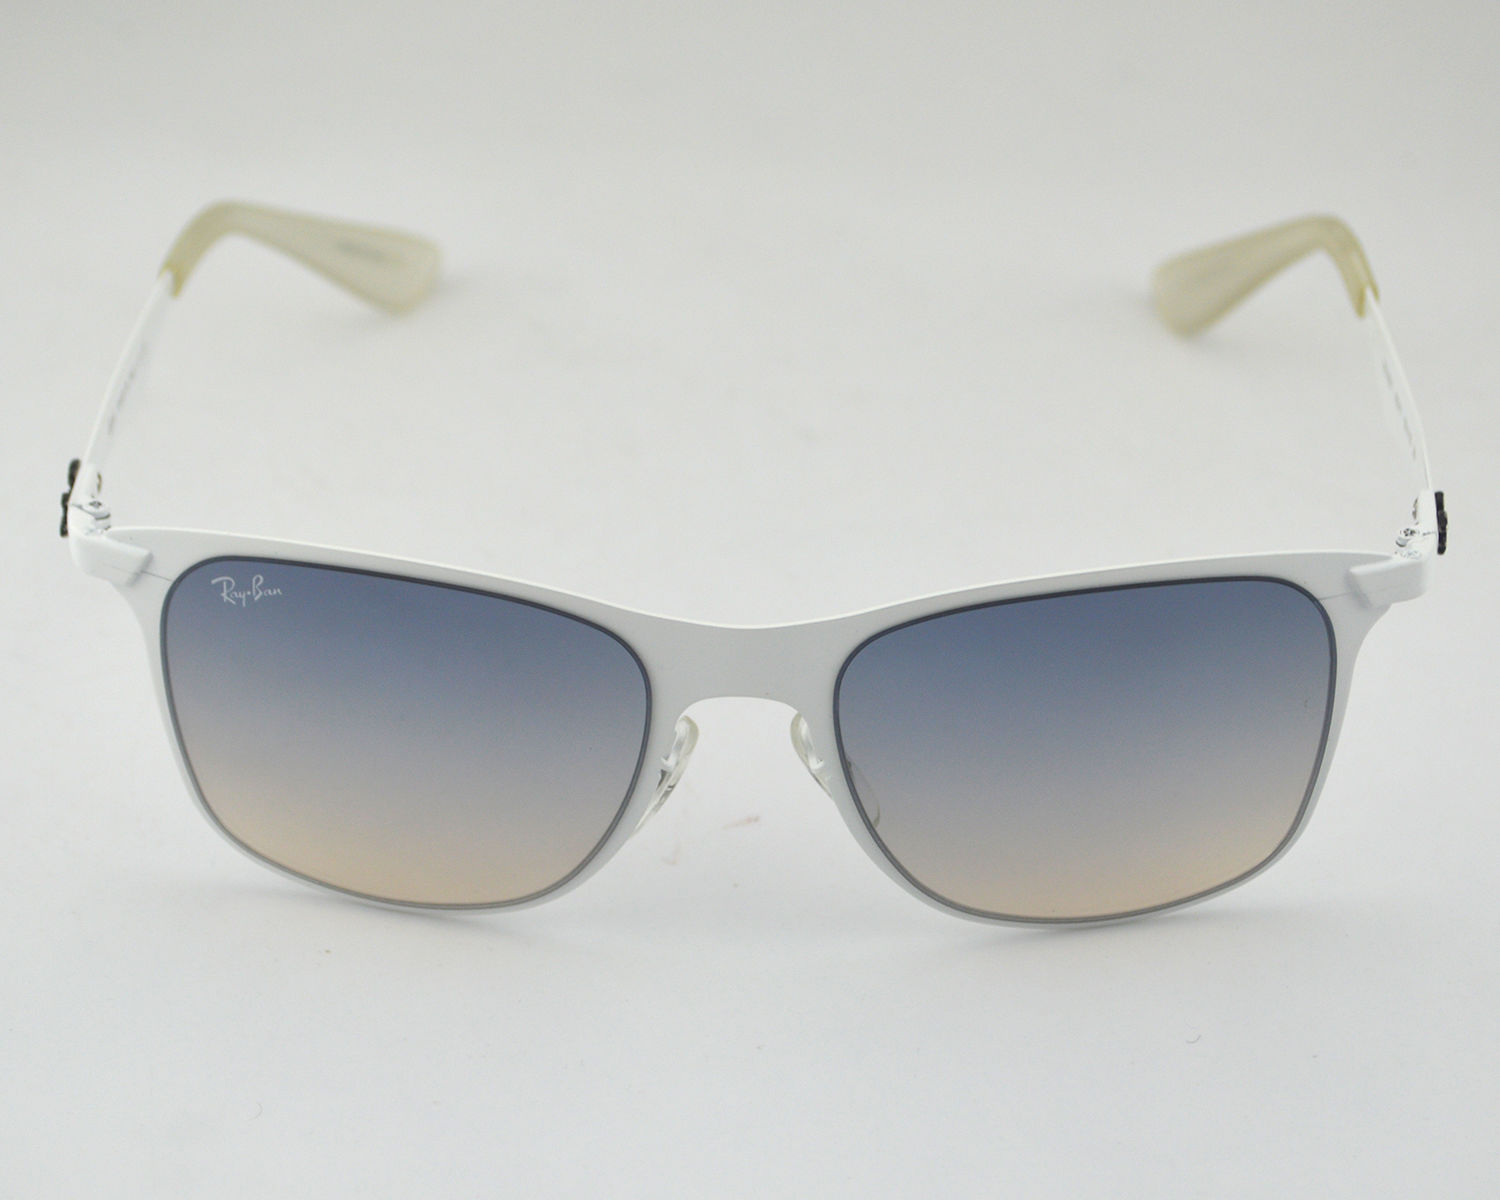 867bed0a44 Ray Ban RB3521 Wayfarer Flat Metal 163 11 White  Grey Gradient Lens  Sunglasses 52mm